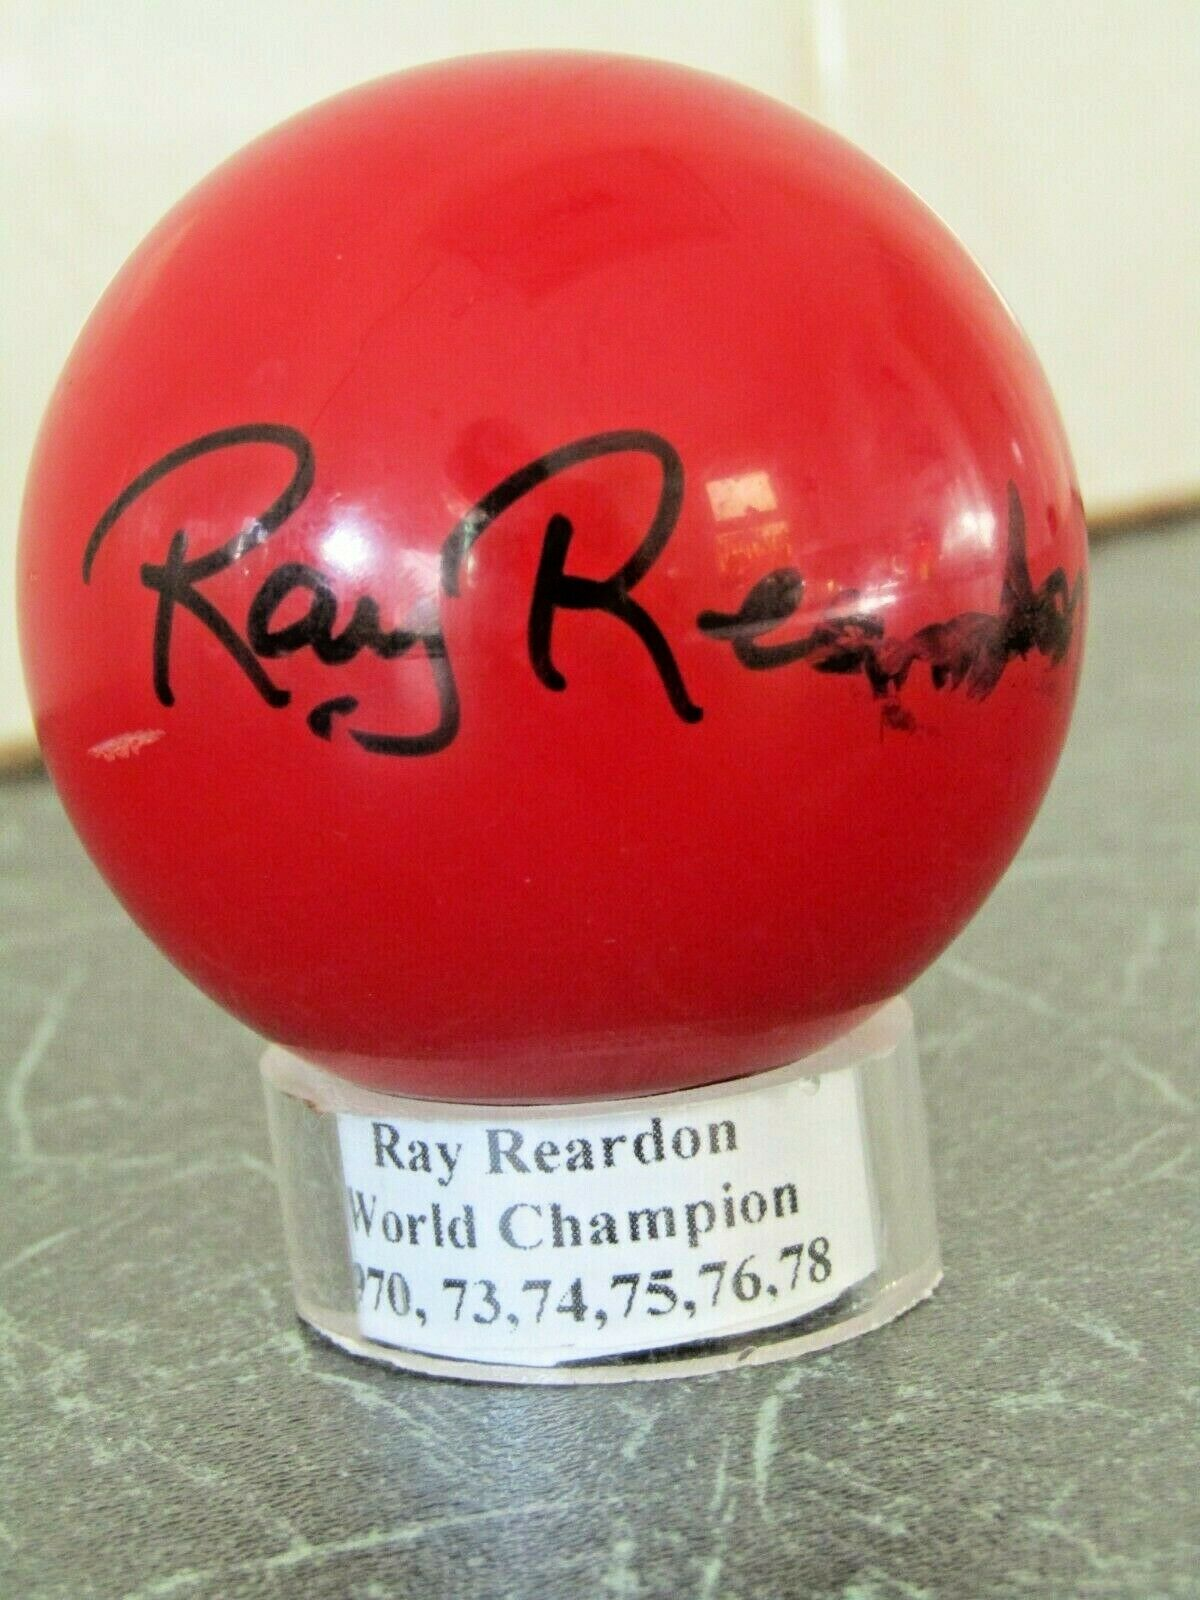 SNOOKER BALL Autographed by RAY REARDON, World Champ1970,73,74,75,76,78 c2005/6